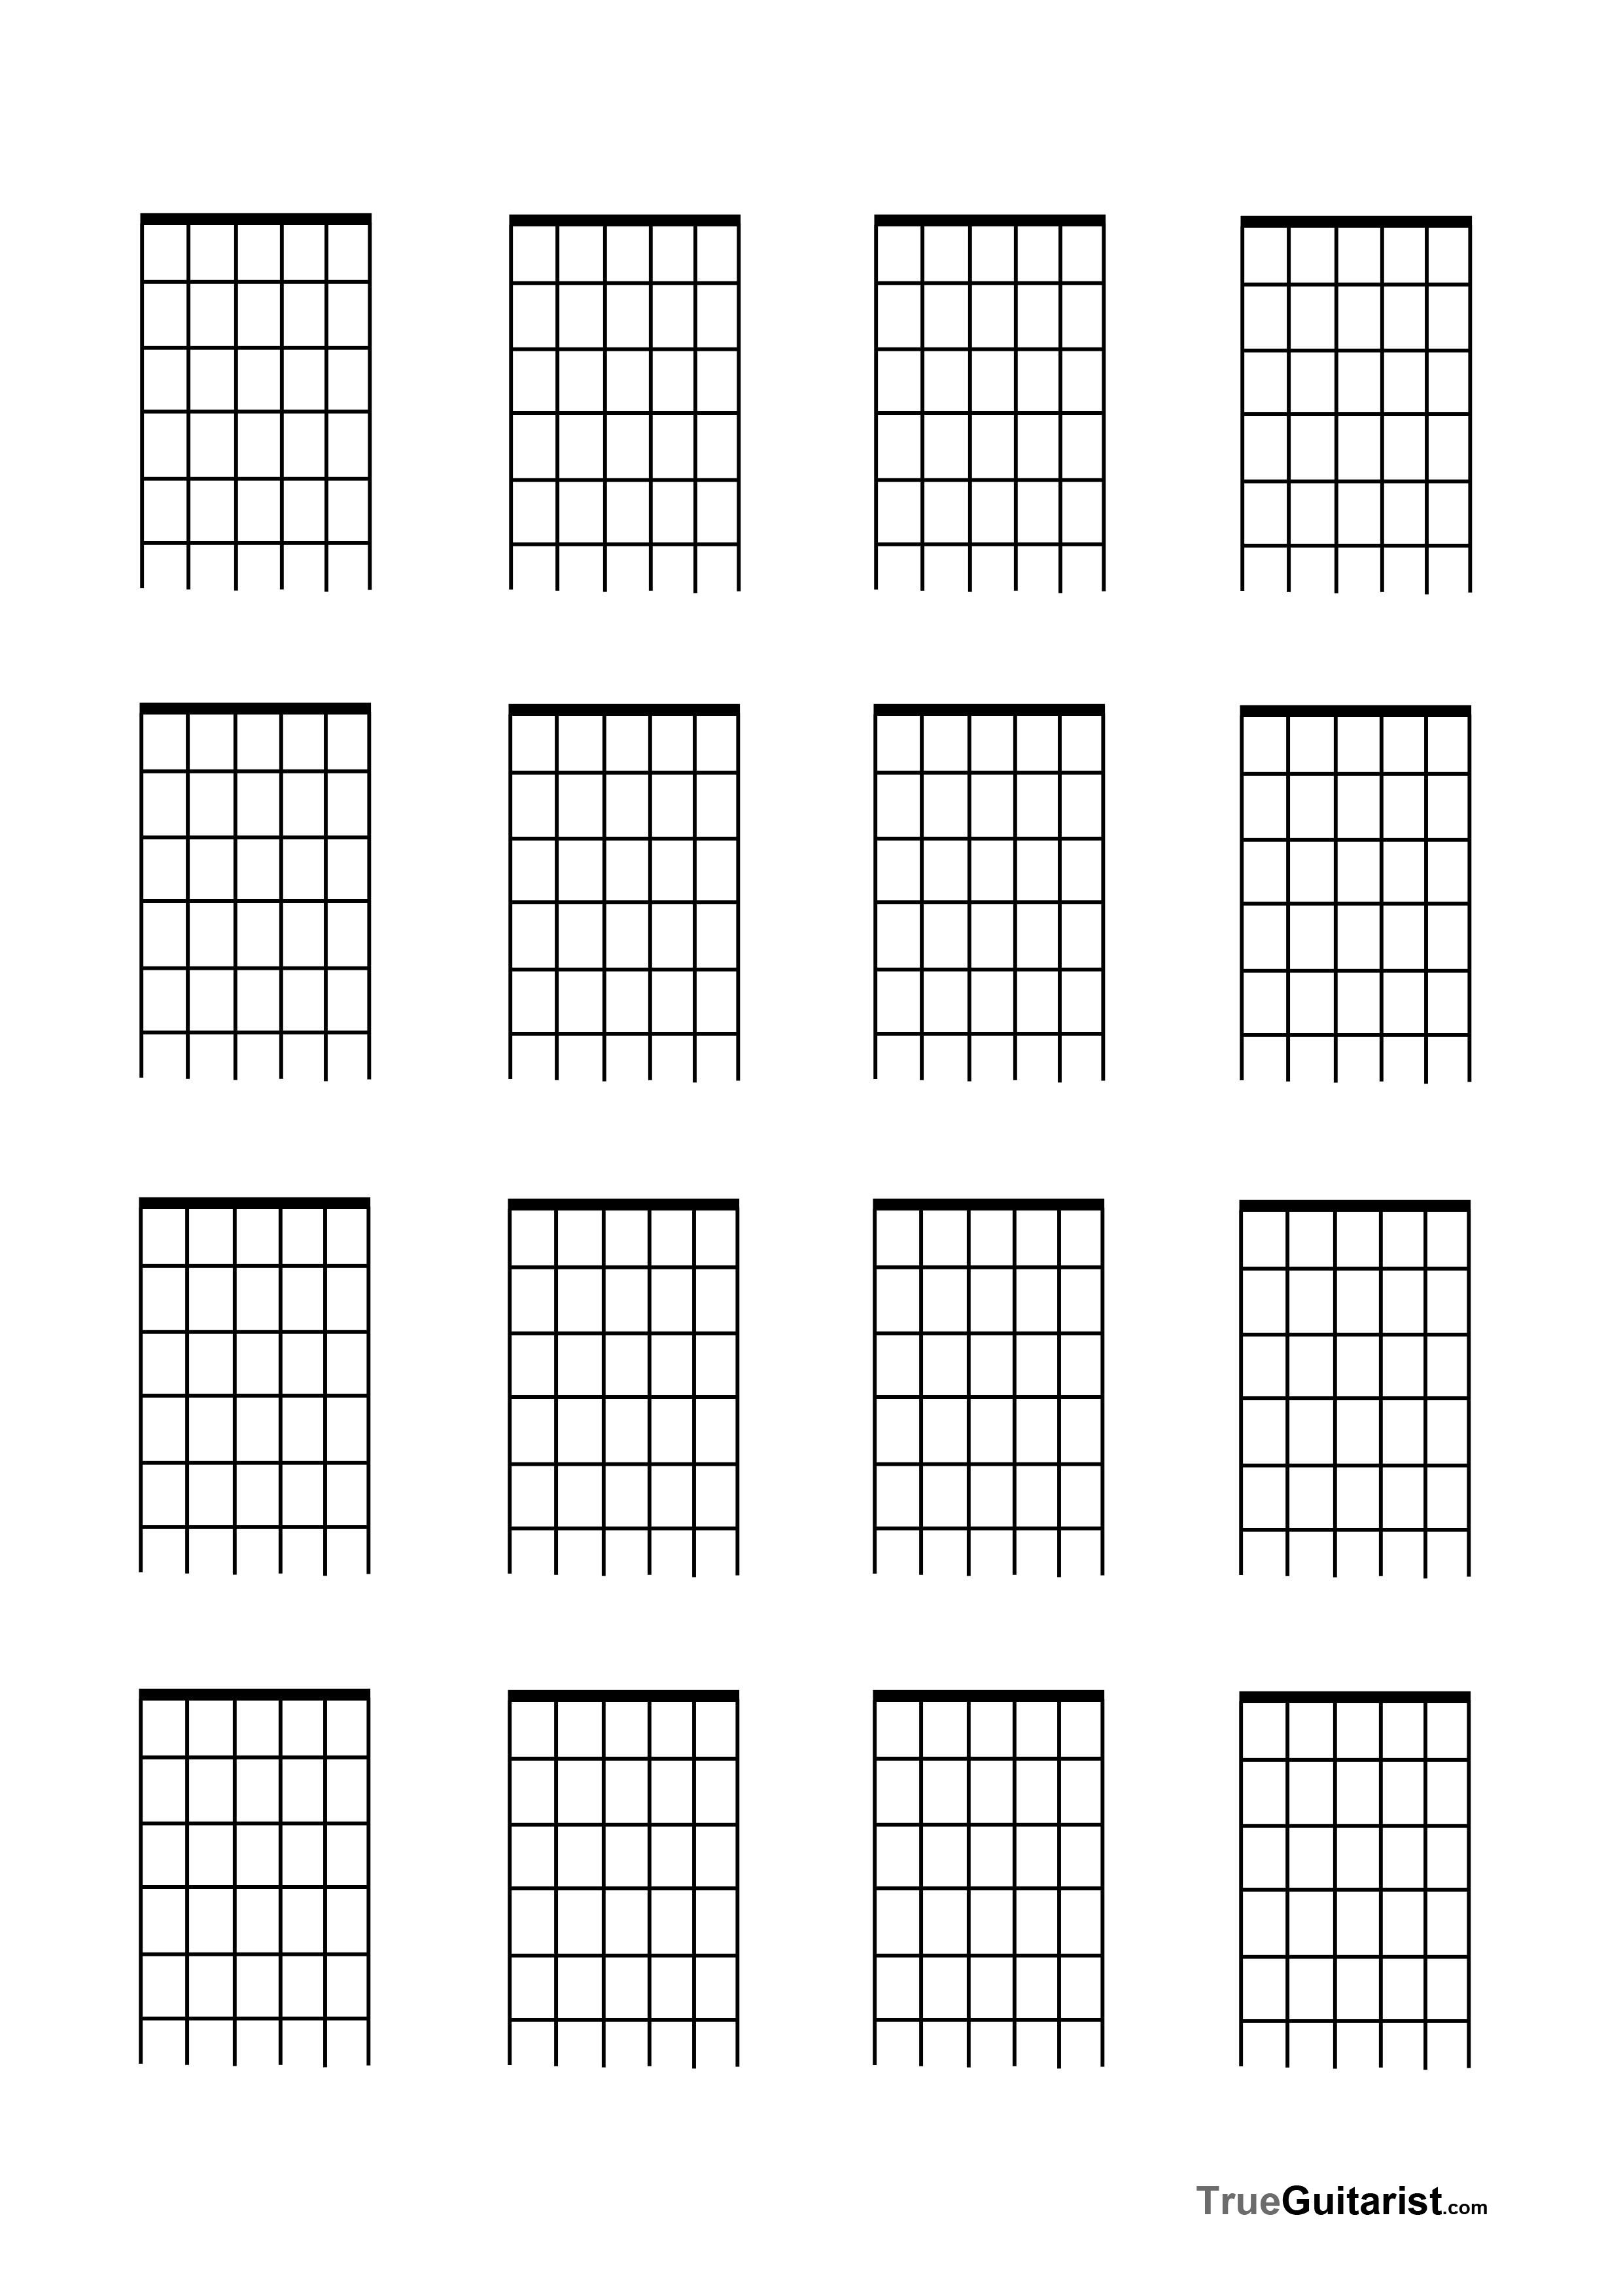 1000+ images about Music on Pinterest | Paper templates, Sheet ...